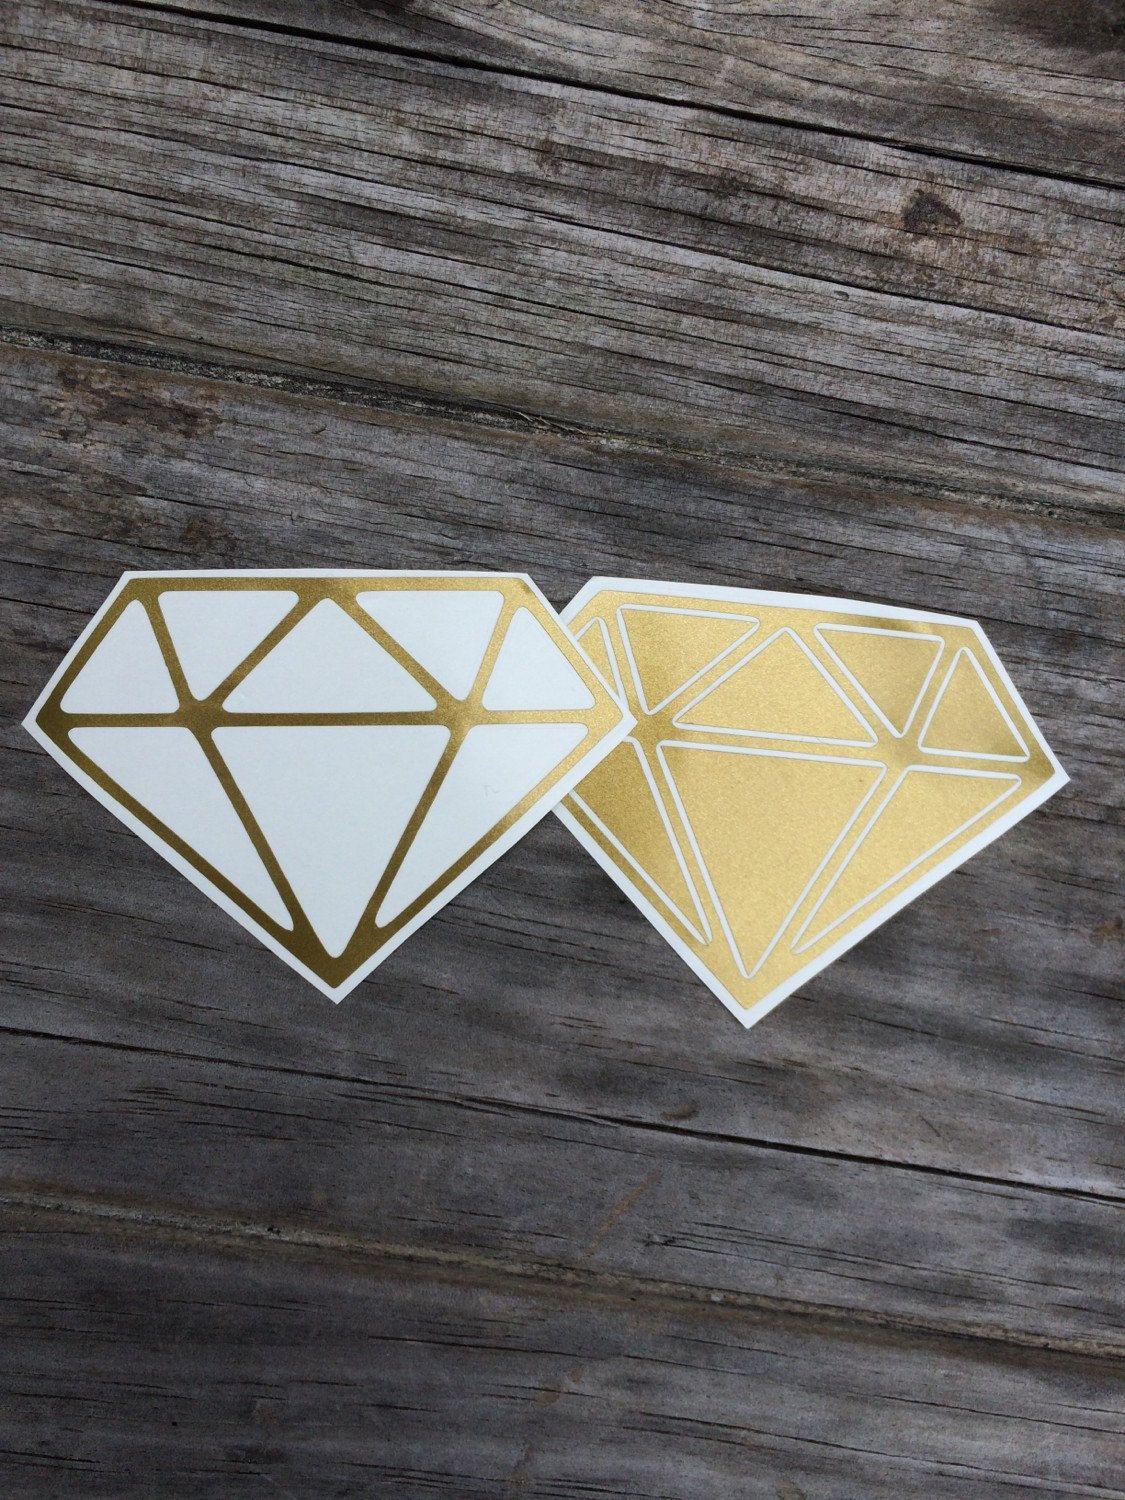 Car sticker design pinterest - Diamond Vinyl Decals In Gold Diamond Vinyl Stickers Diamond Laptop Decal Car Sticker Vinyl Design Stickers Diamond Stickers